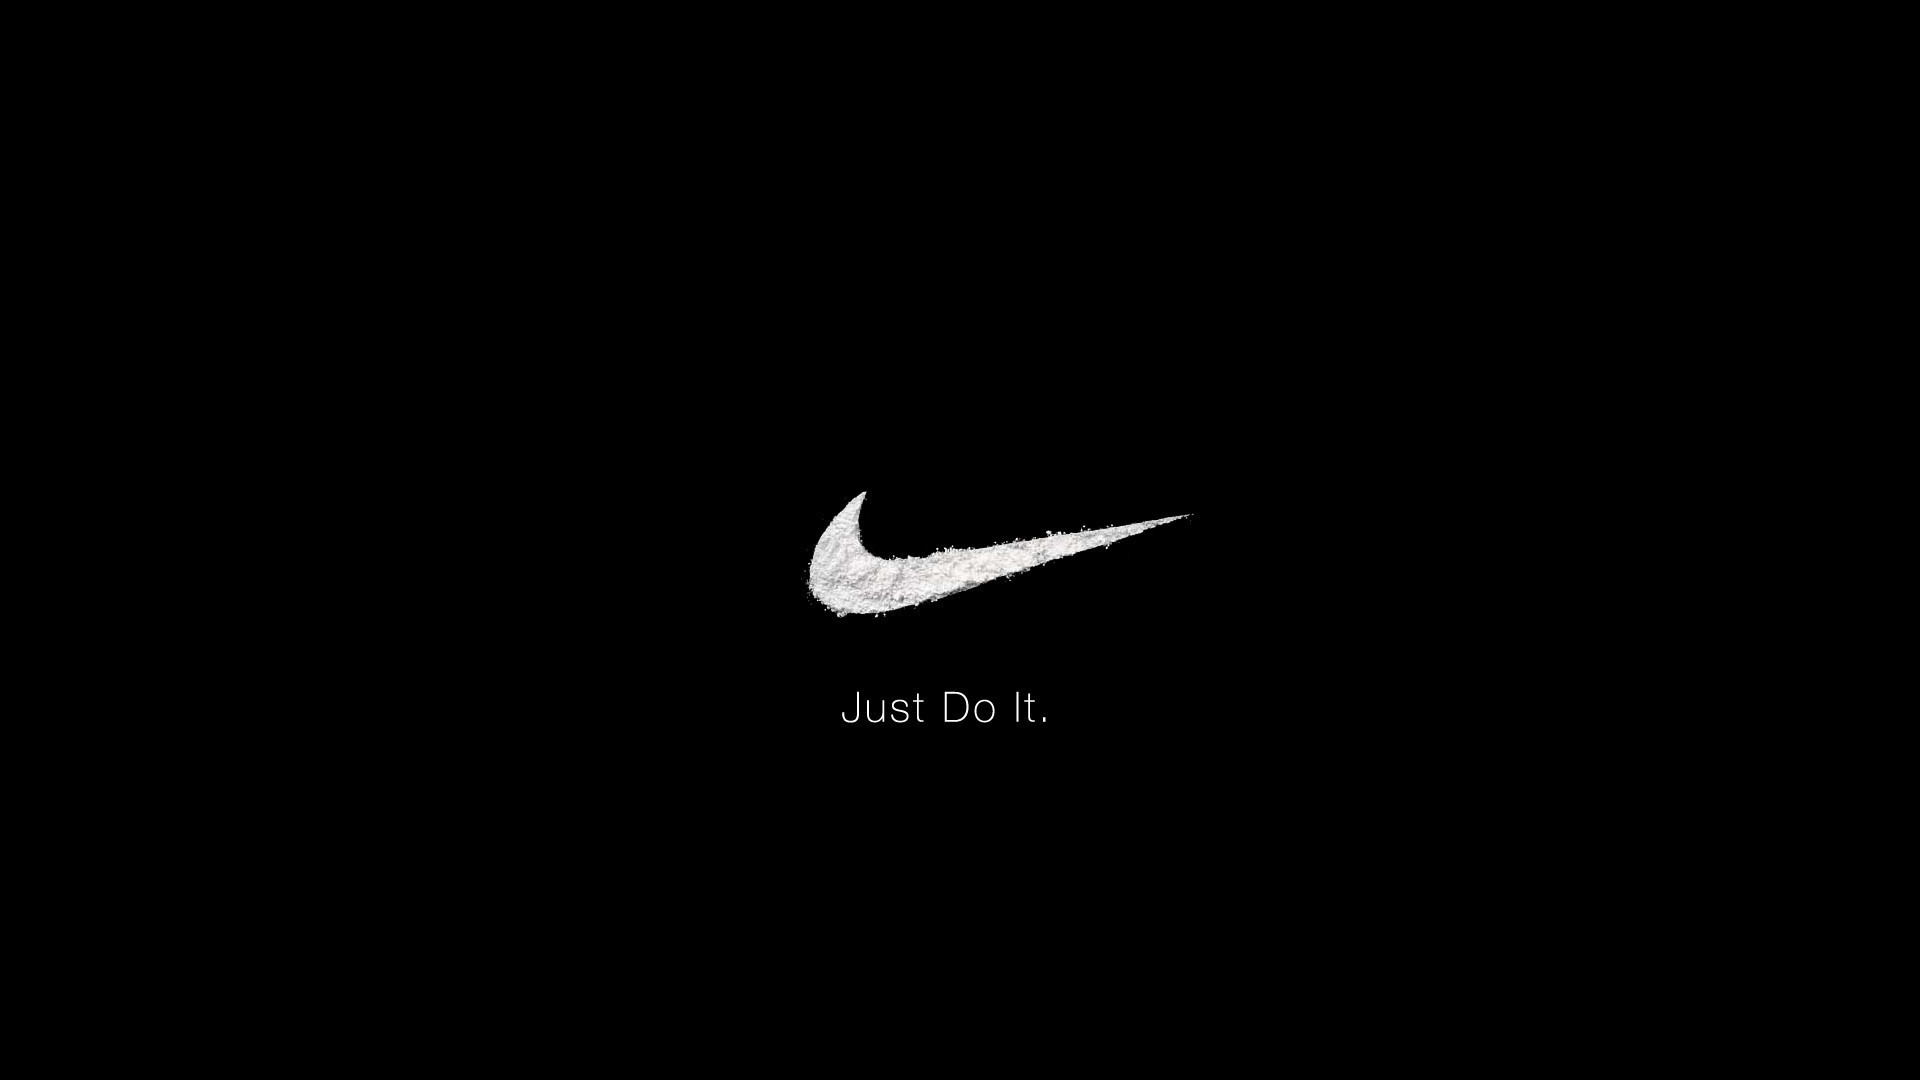 Res: 1920x1080, Cool Just Do It Wallpaper